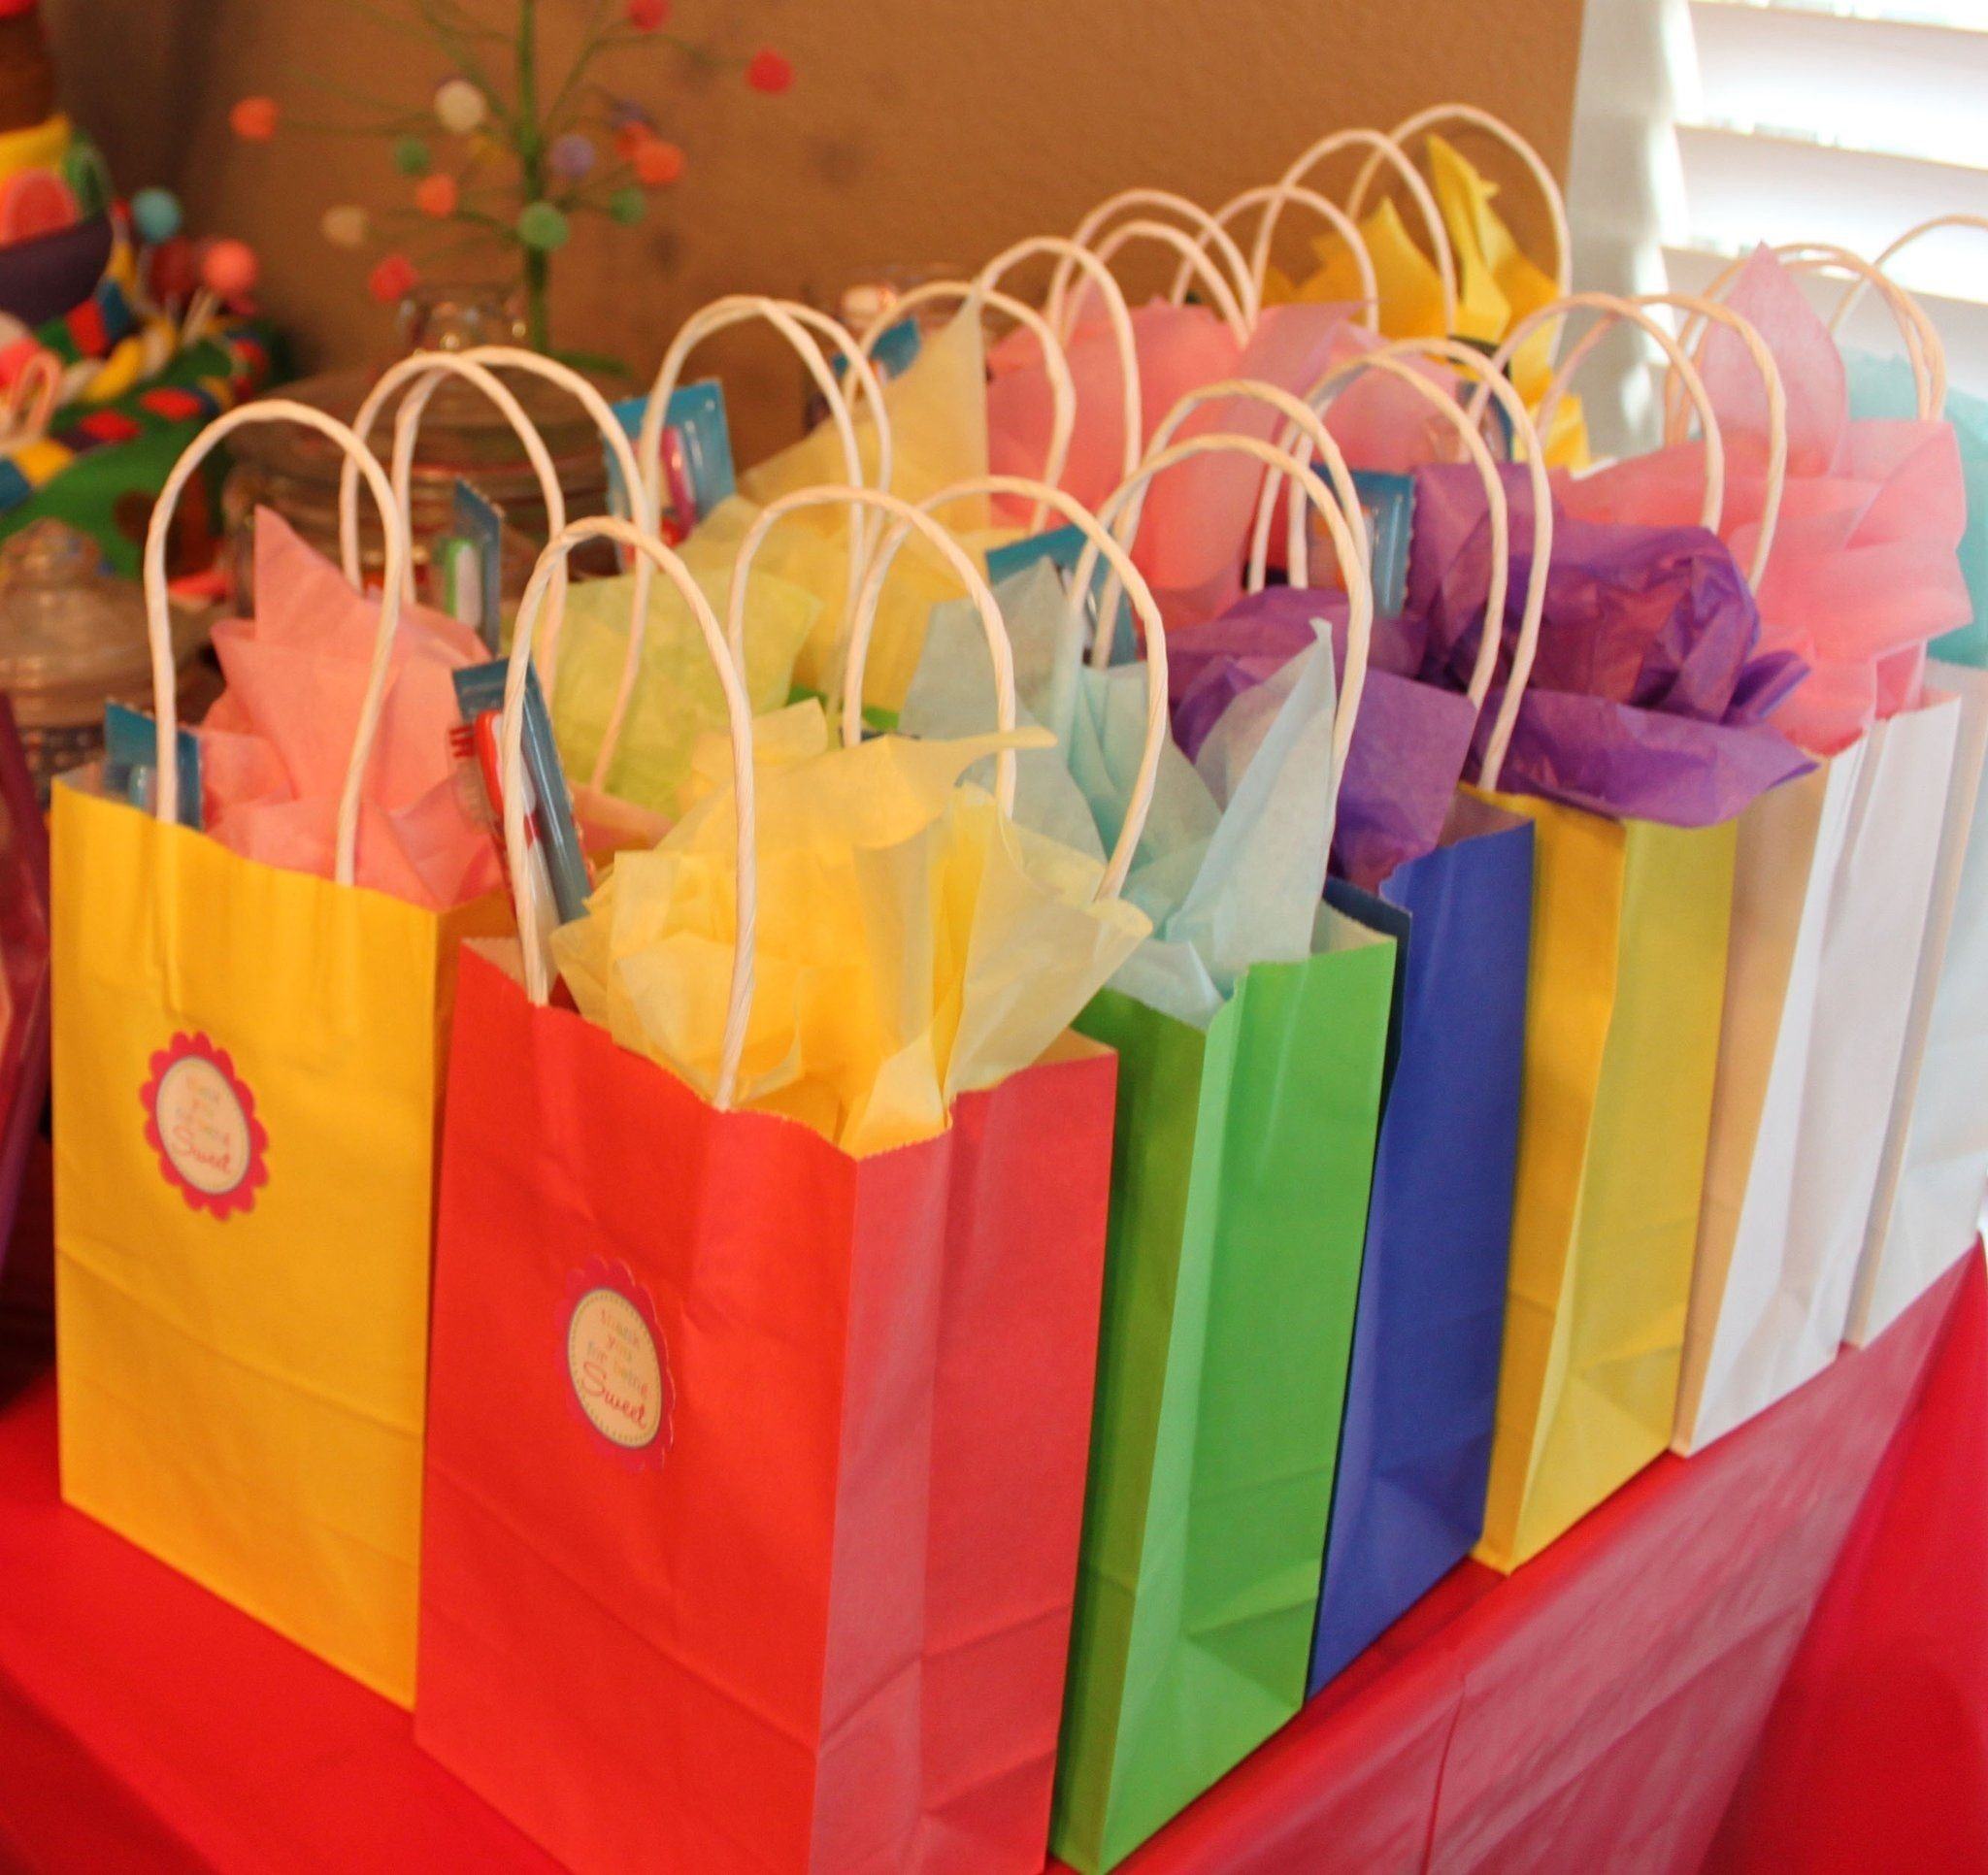 10 Spectacular Goodie Bag Ideas For Kids Birthday Parties 11 fun and easy slumber party ideas slumber parties sleepover and 2020